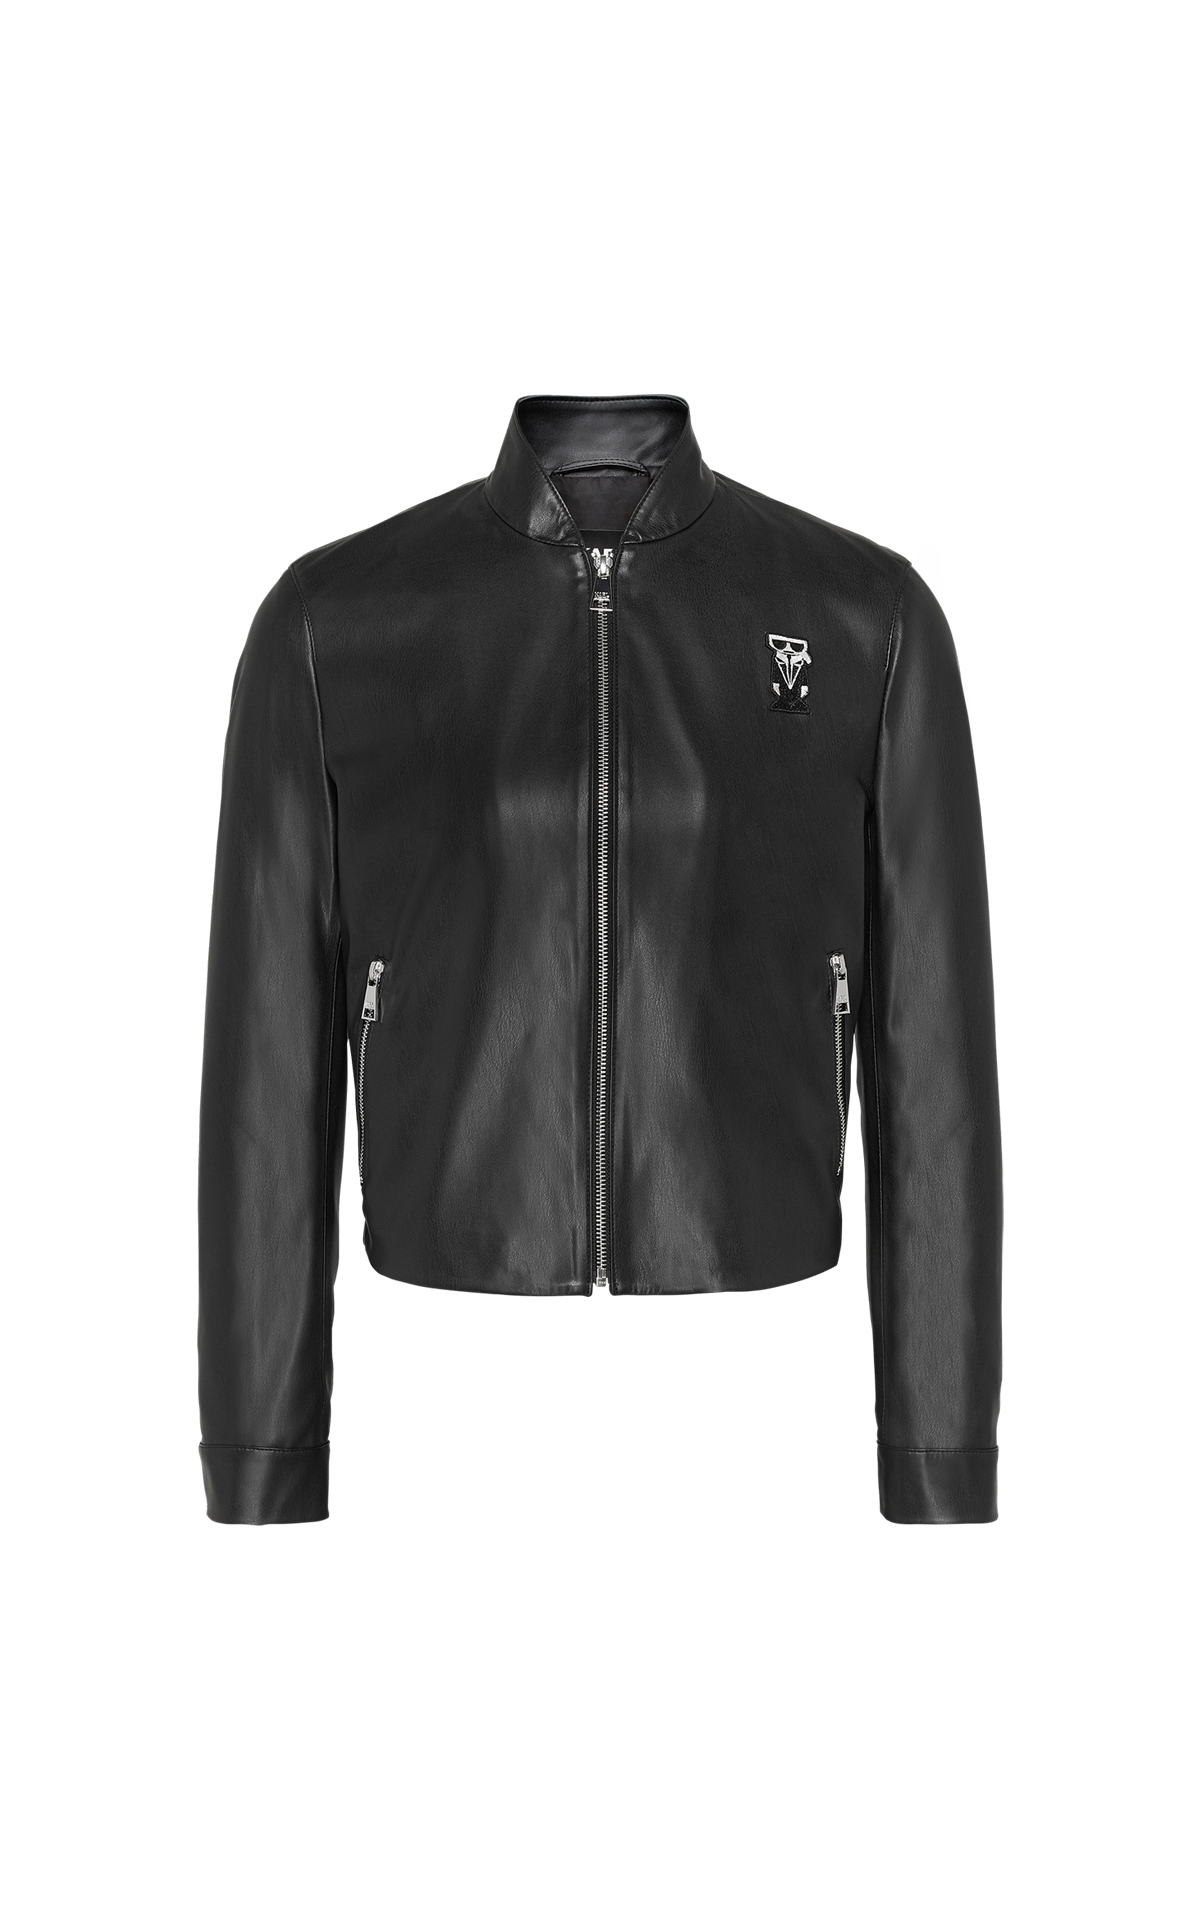 Karl Lagerfeld Kocktail Jacket at The Bicester Village Shopping Collection